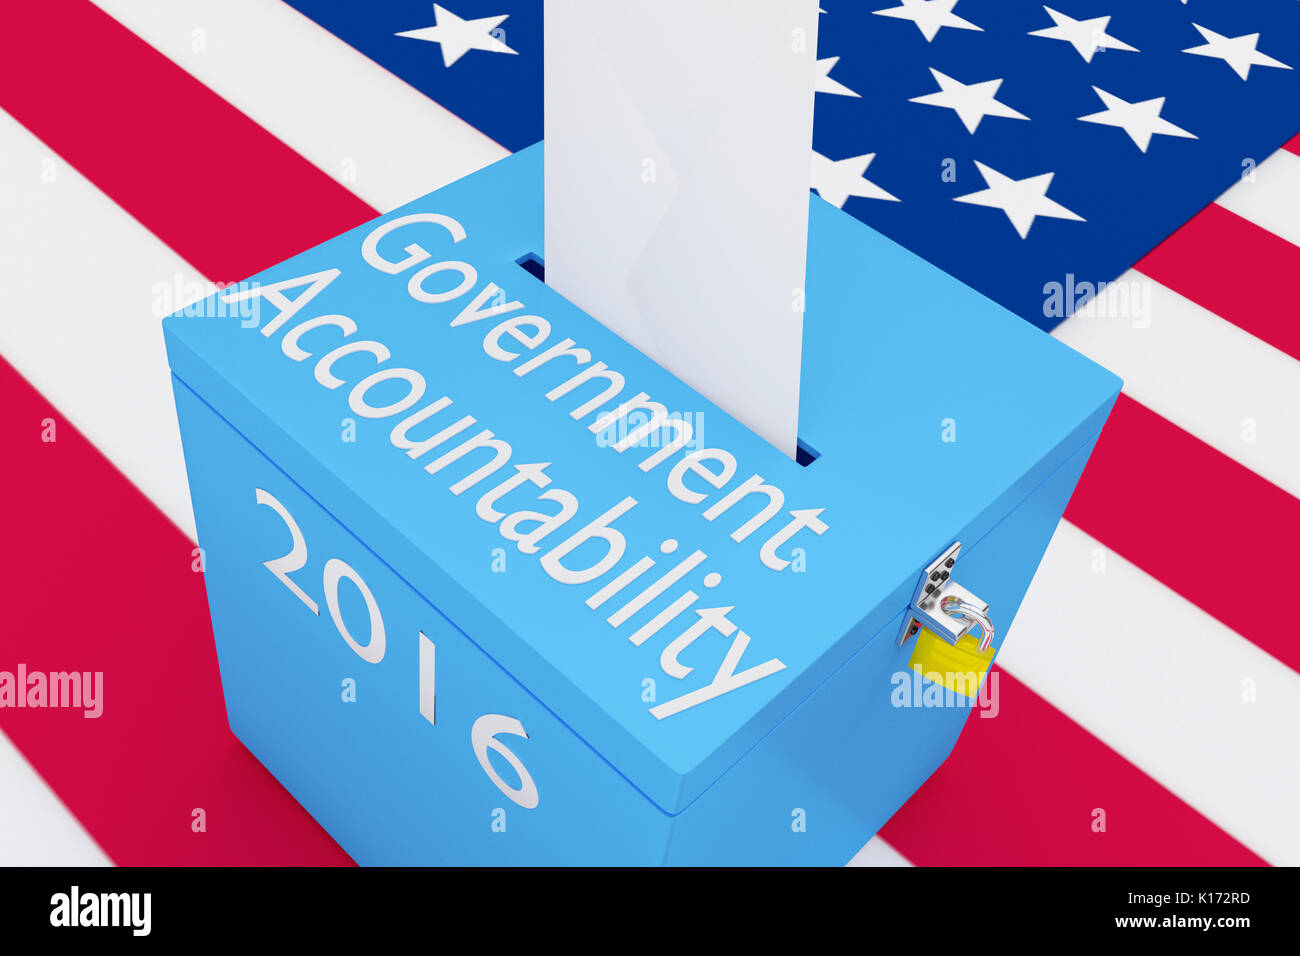 3D illustration of 'Government Accountability', '2016' scripts and on ballot box, with US flag as a background. - Stock Image